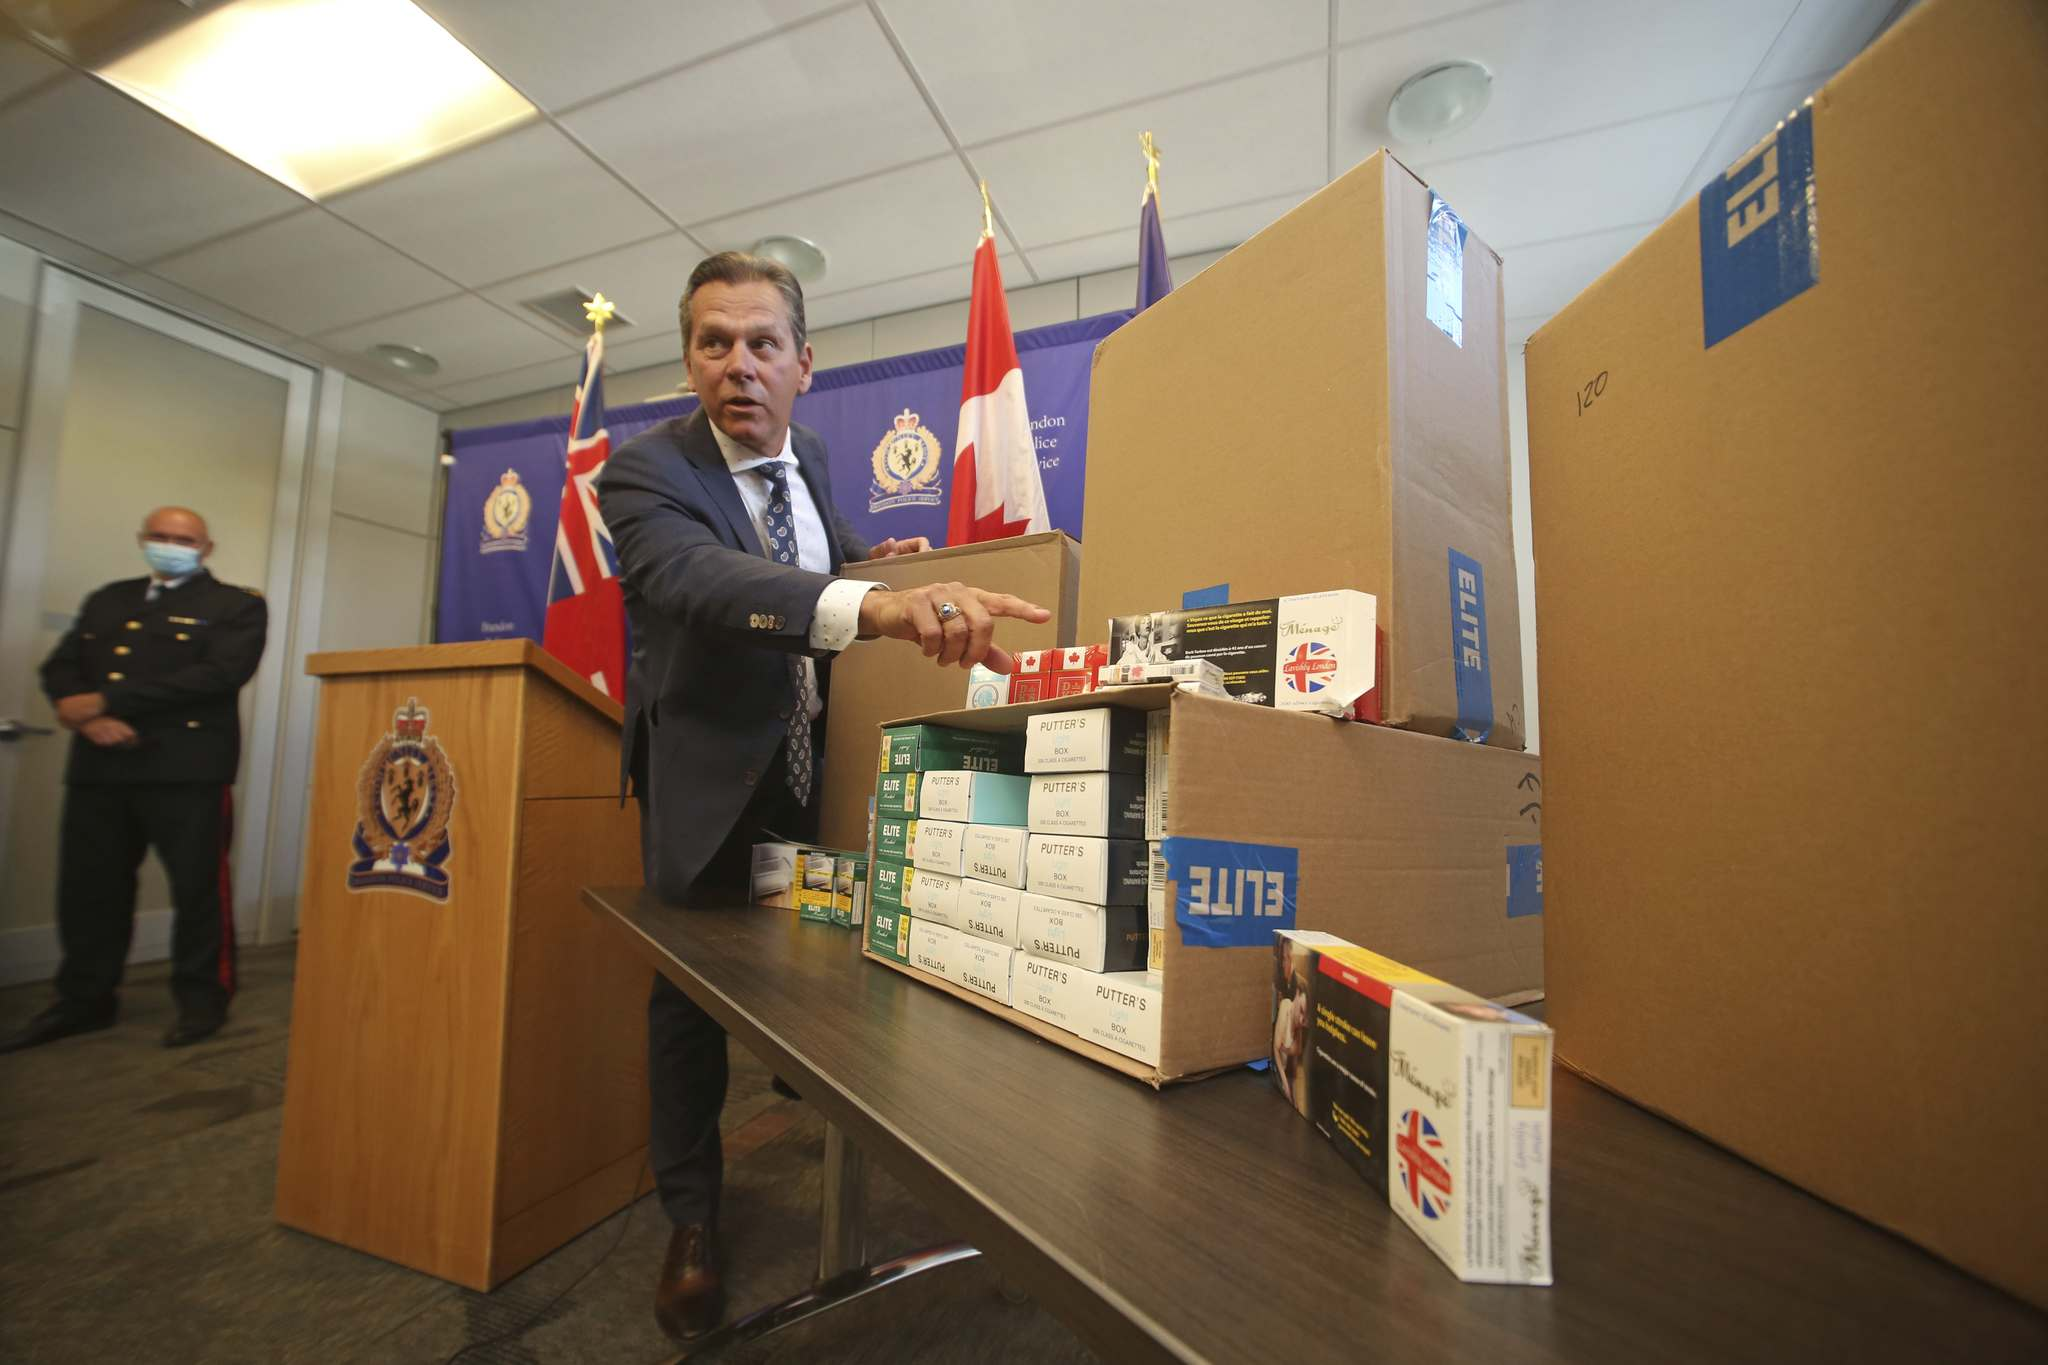 Ron Bell, supervisor of the Manitoba Taxation, Special Investigations Unit, points to one of the brands of contraband cigarettes seized by the Brandon Police Service through a partnership with the Manitoba and Ontario provincial governments.</p><p>(Matt Goerzen/The Brandon Sun)</p></p>